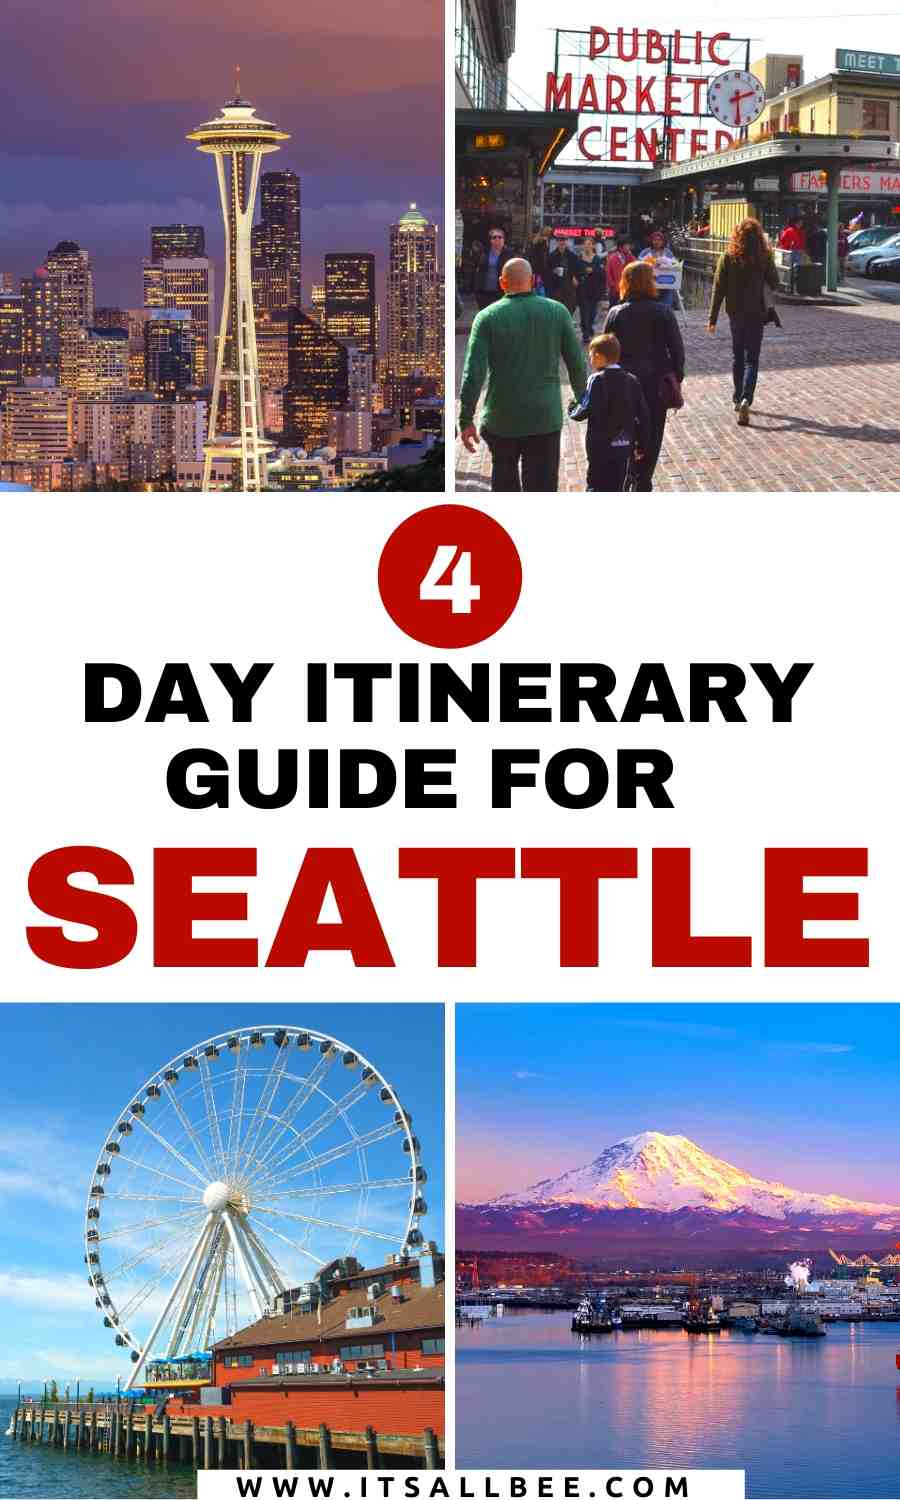 What to see in Seattle in 4 days